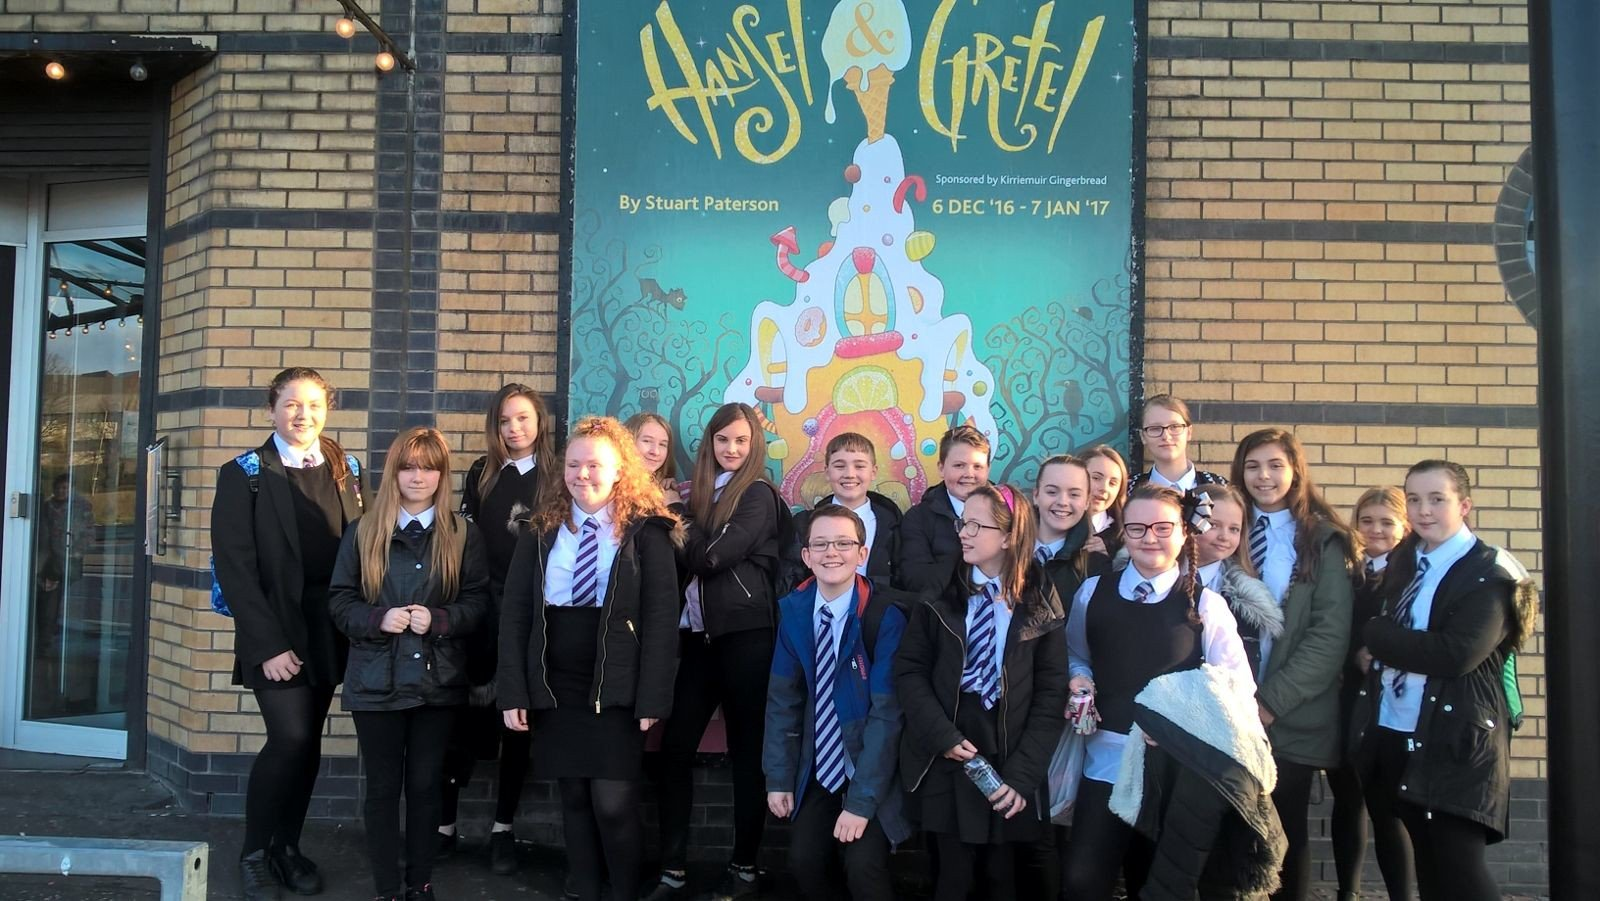 The Drama Club about to watch the excellent Hansel and Gretel at The Citz #HanselandGretel #citz https://t.co/x4QZ9zmeuY